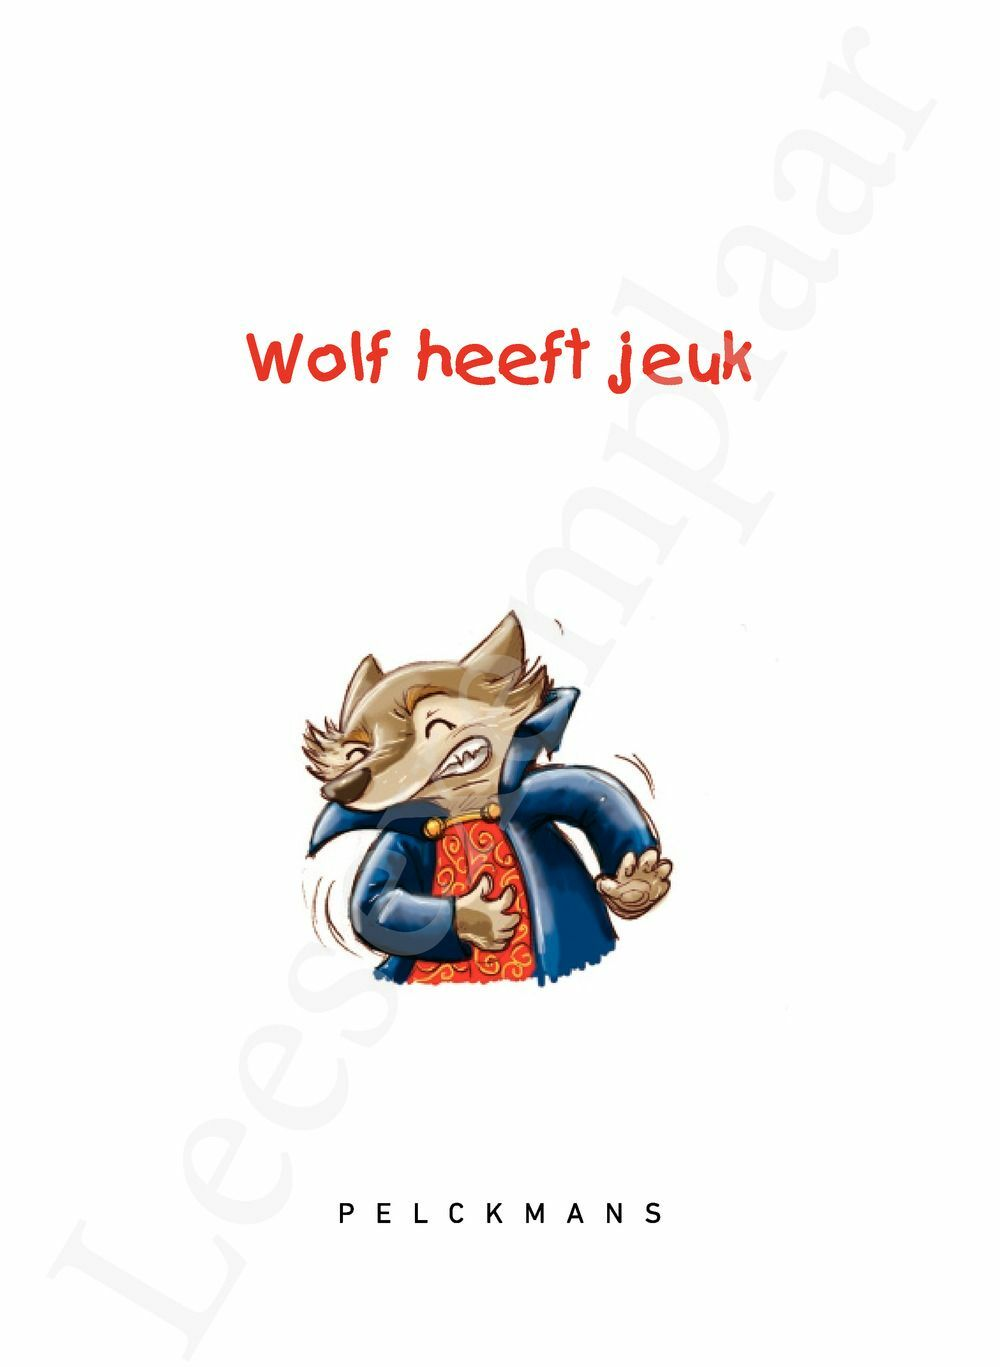 Preview: Wolf heeft jeuk